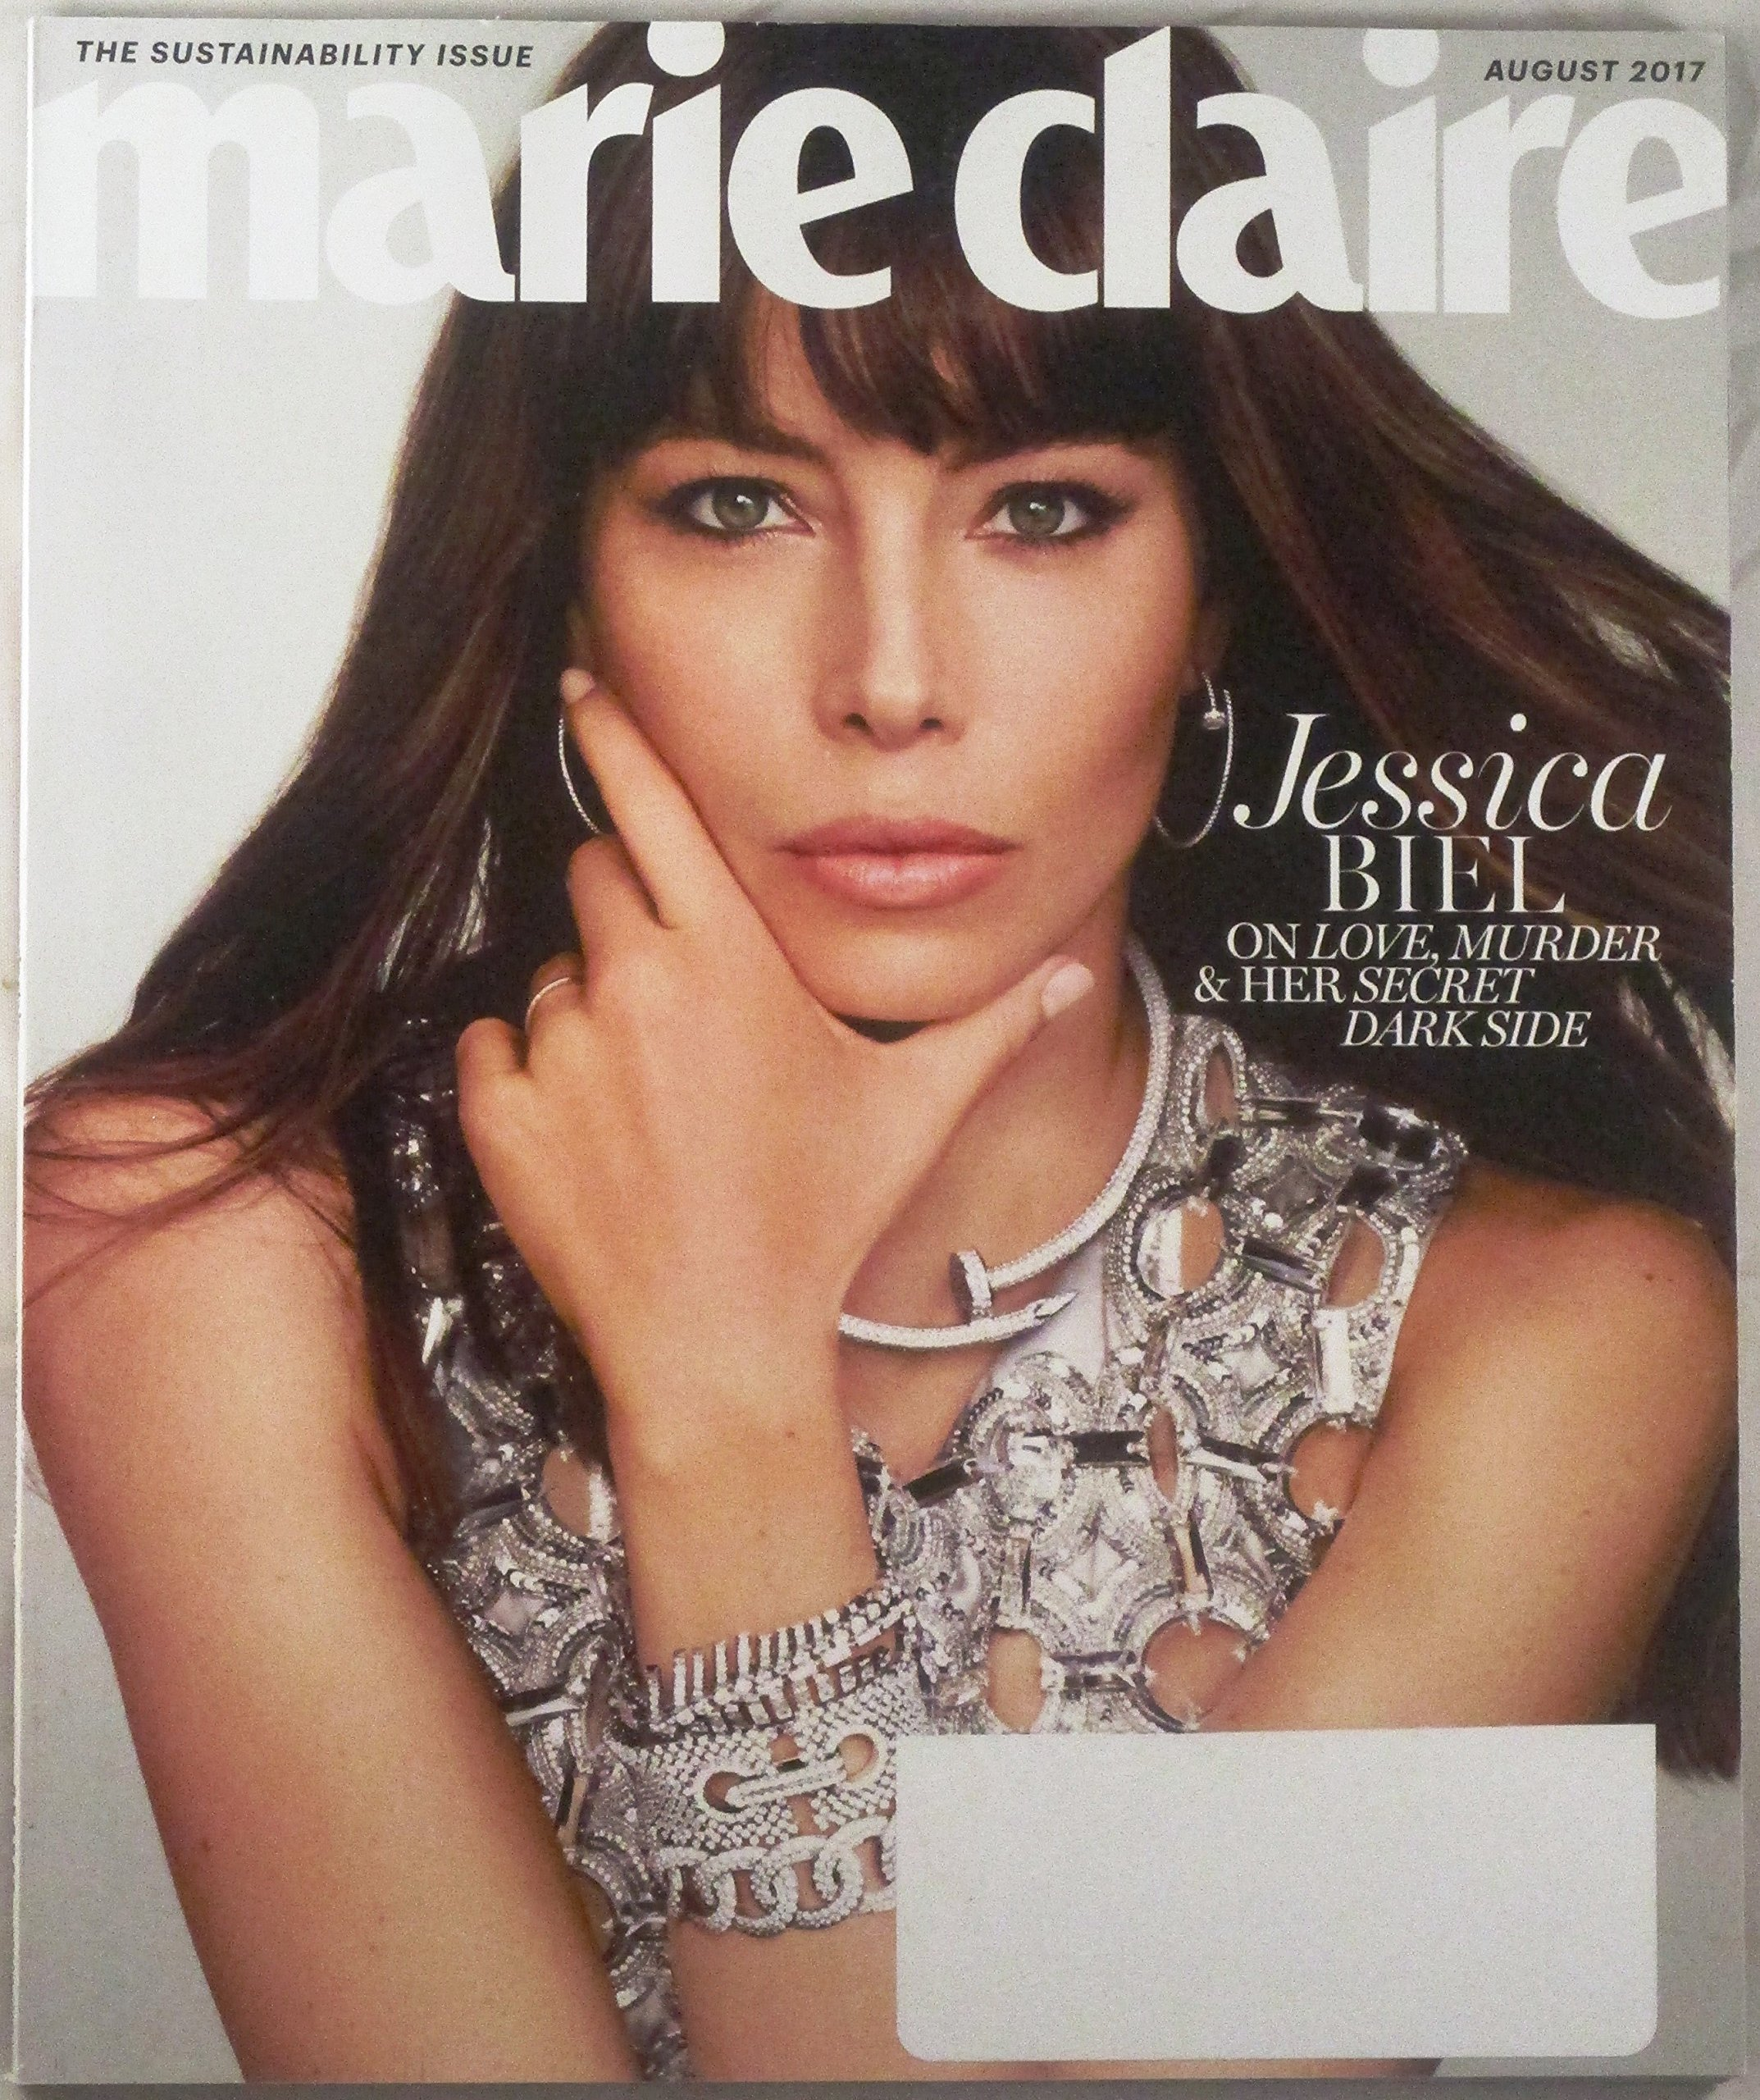 picture Jessica biel marie claire magazine us august 2019 issue